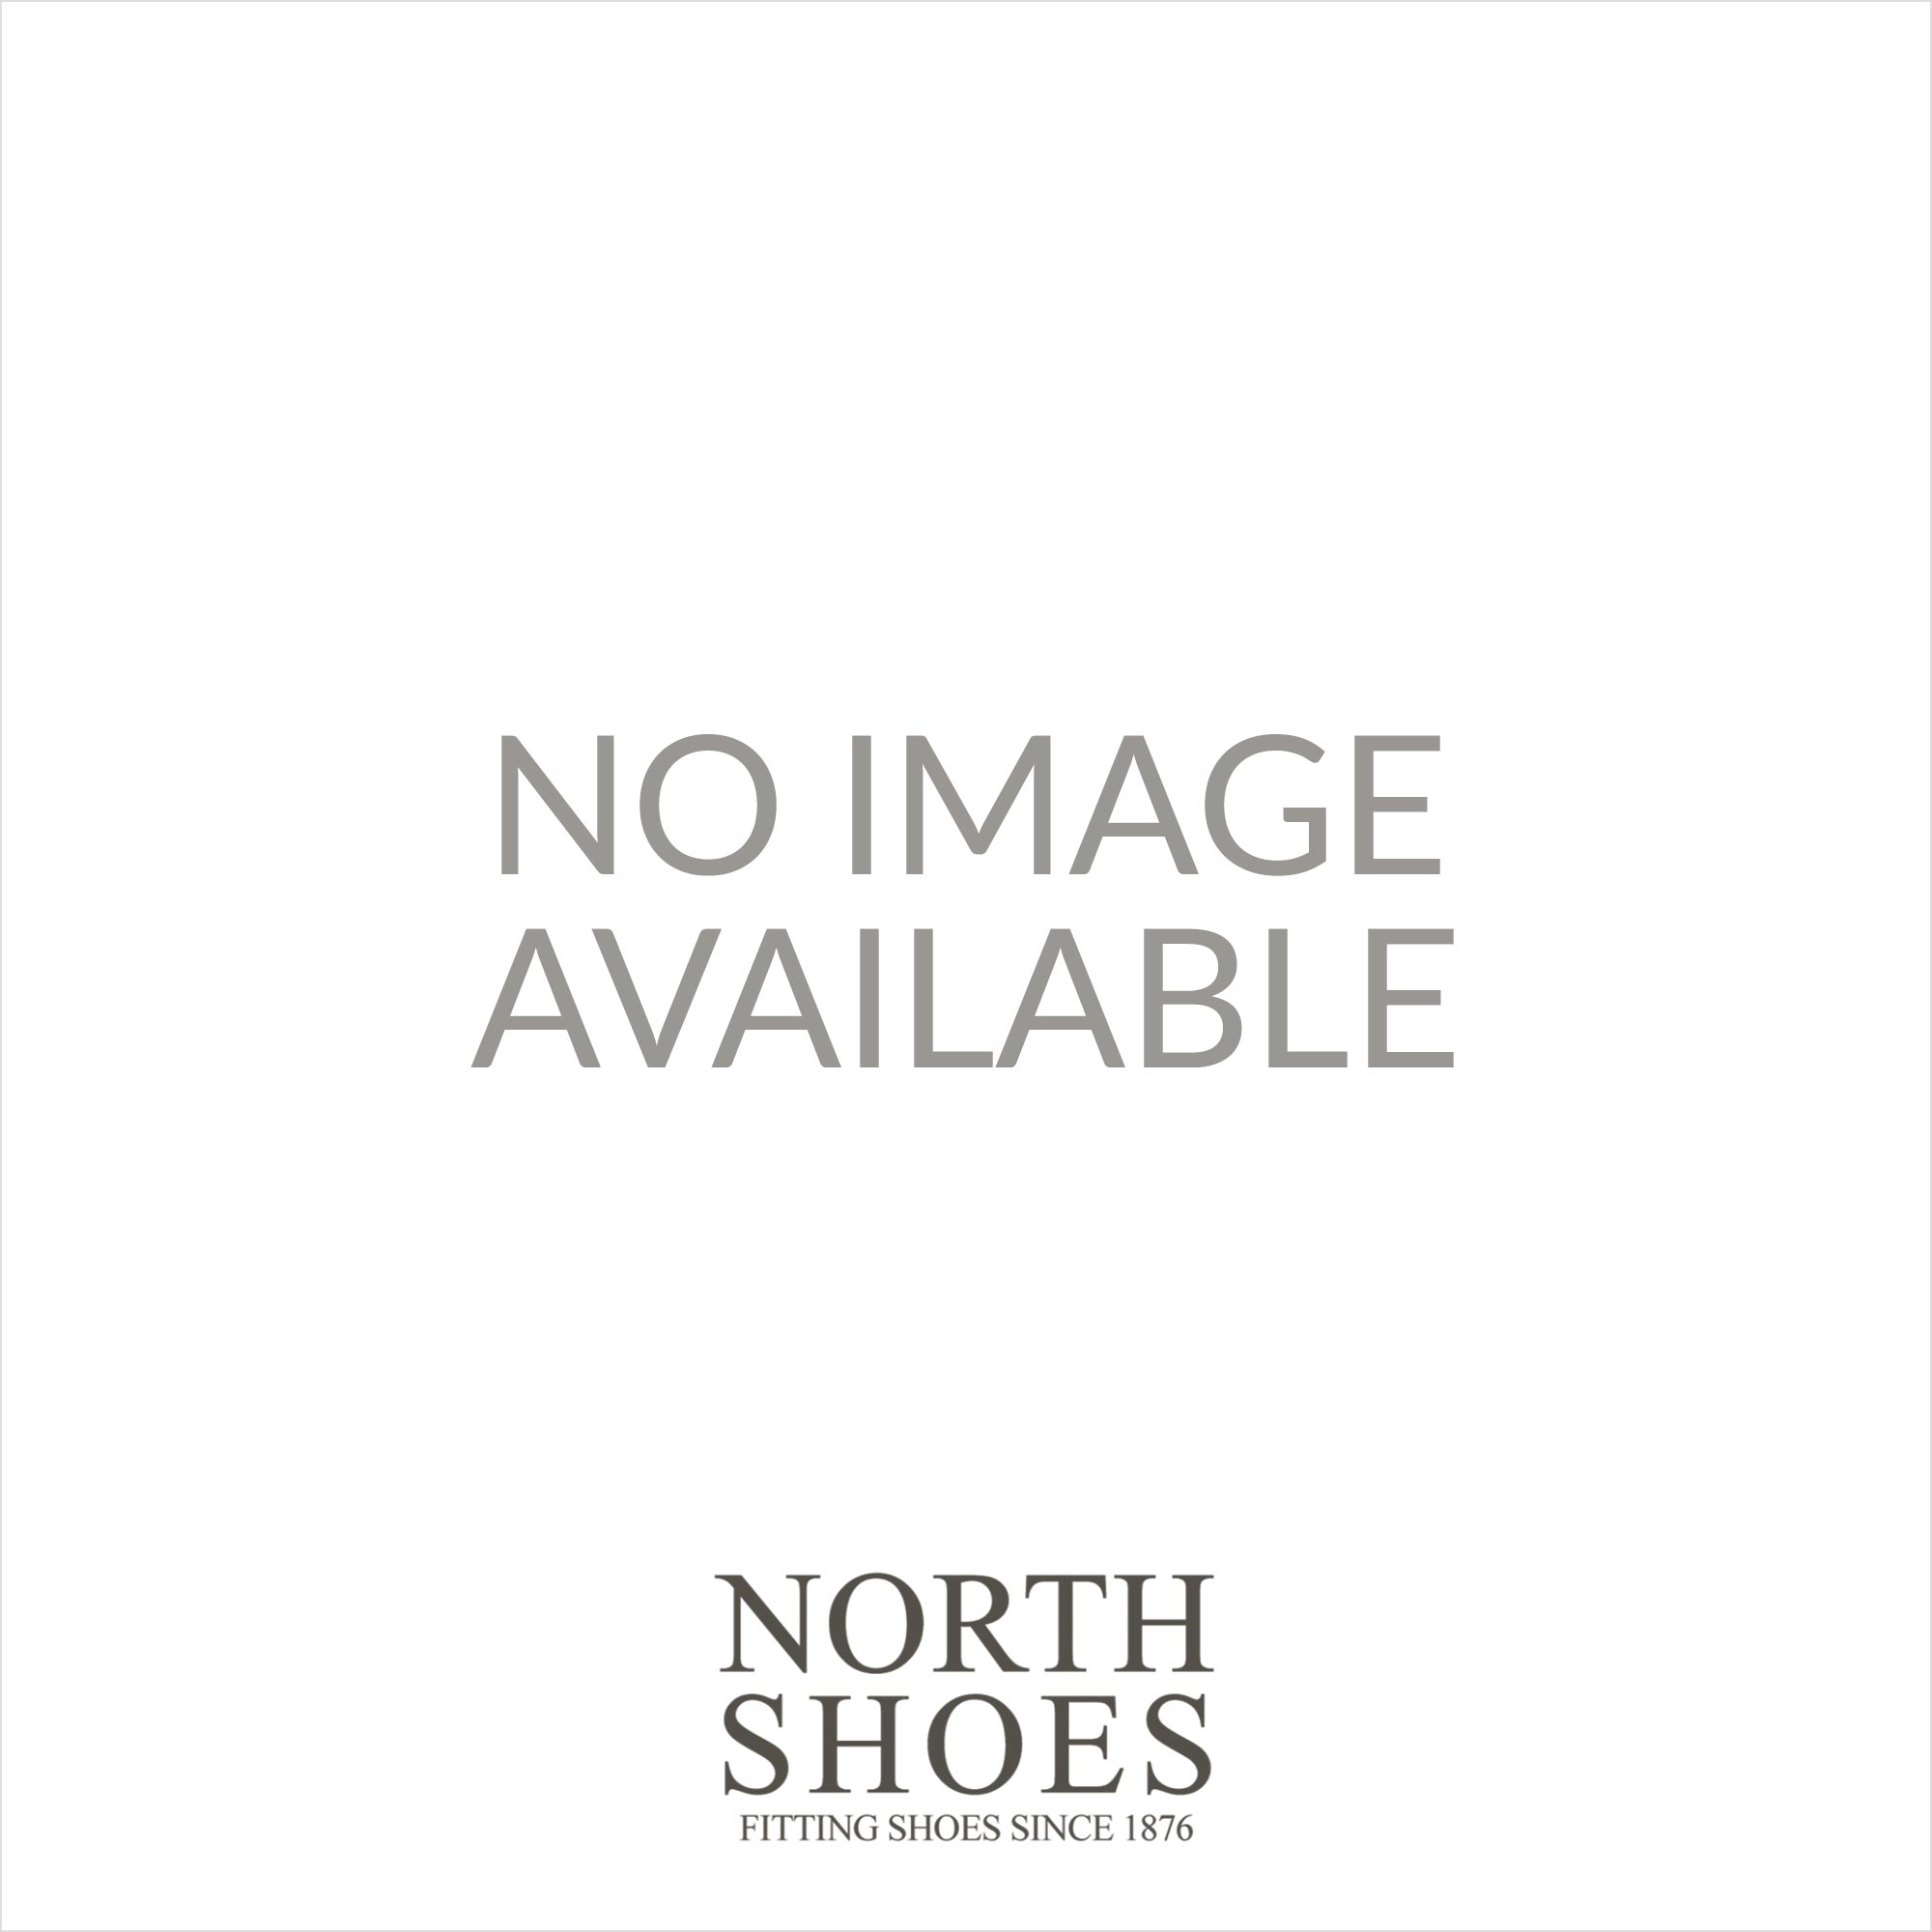 7373ba4dd7 Clarks Keesha Rosa Black Leather Womens Slip On Shoe - Clarks from North  Shoes UK